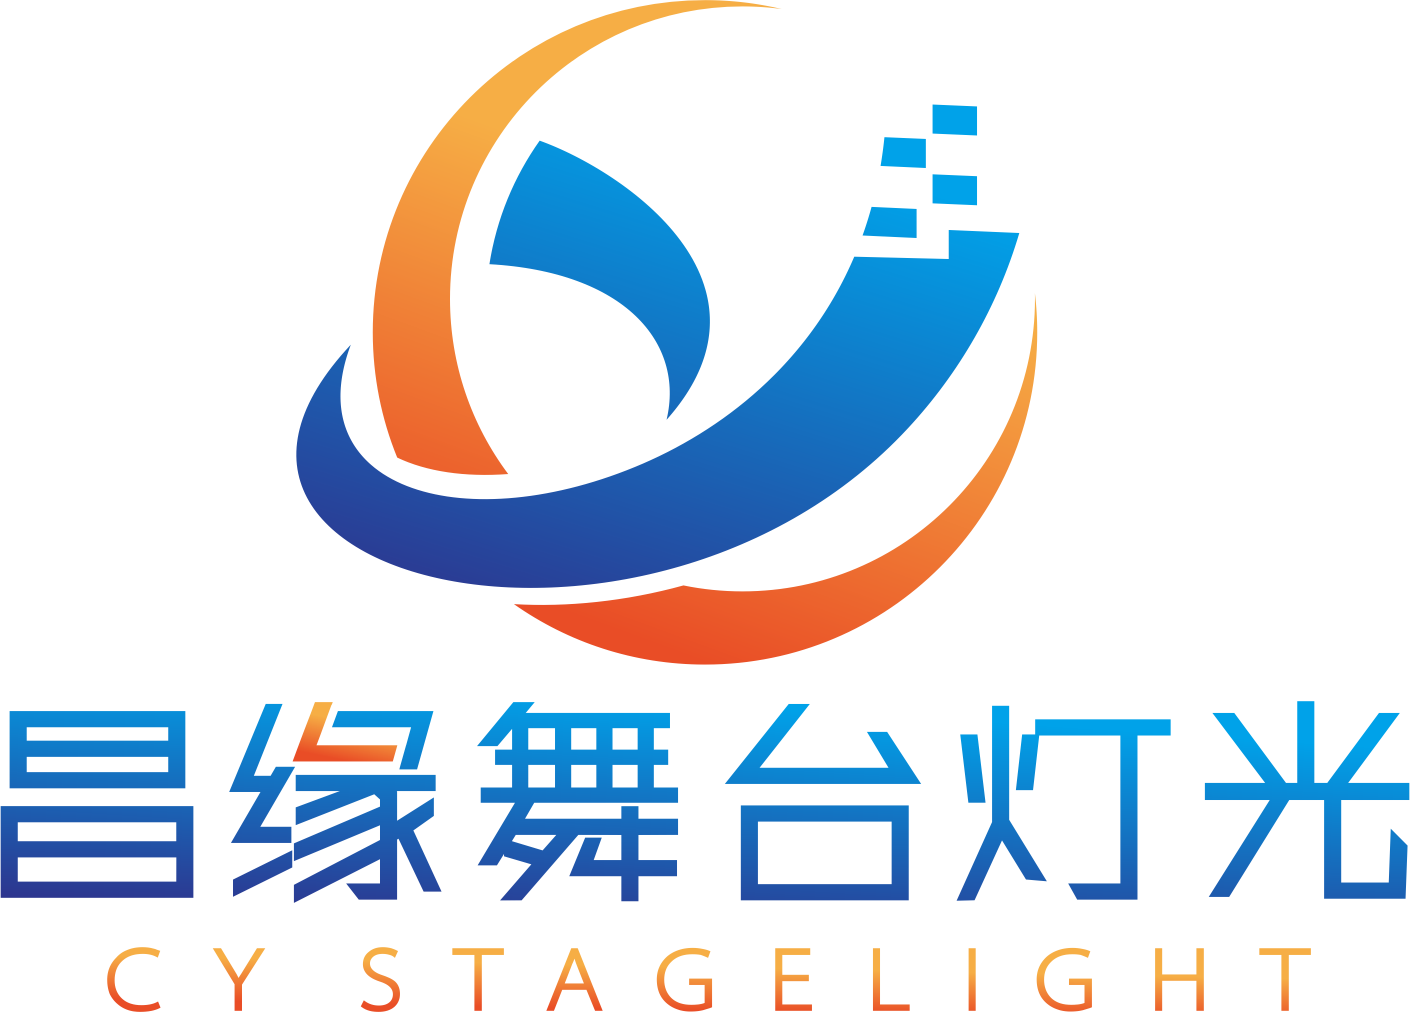 cystagelights